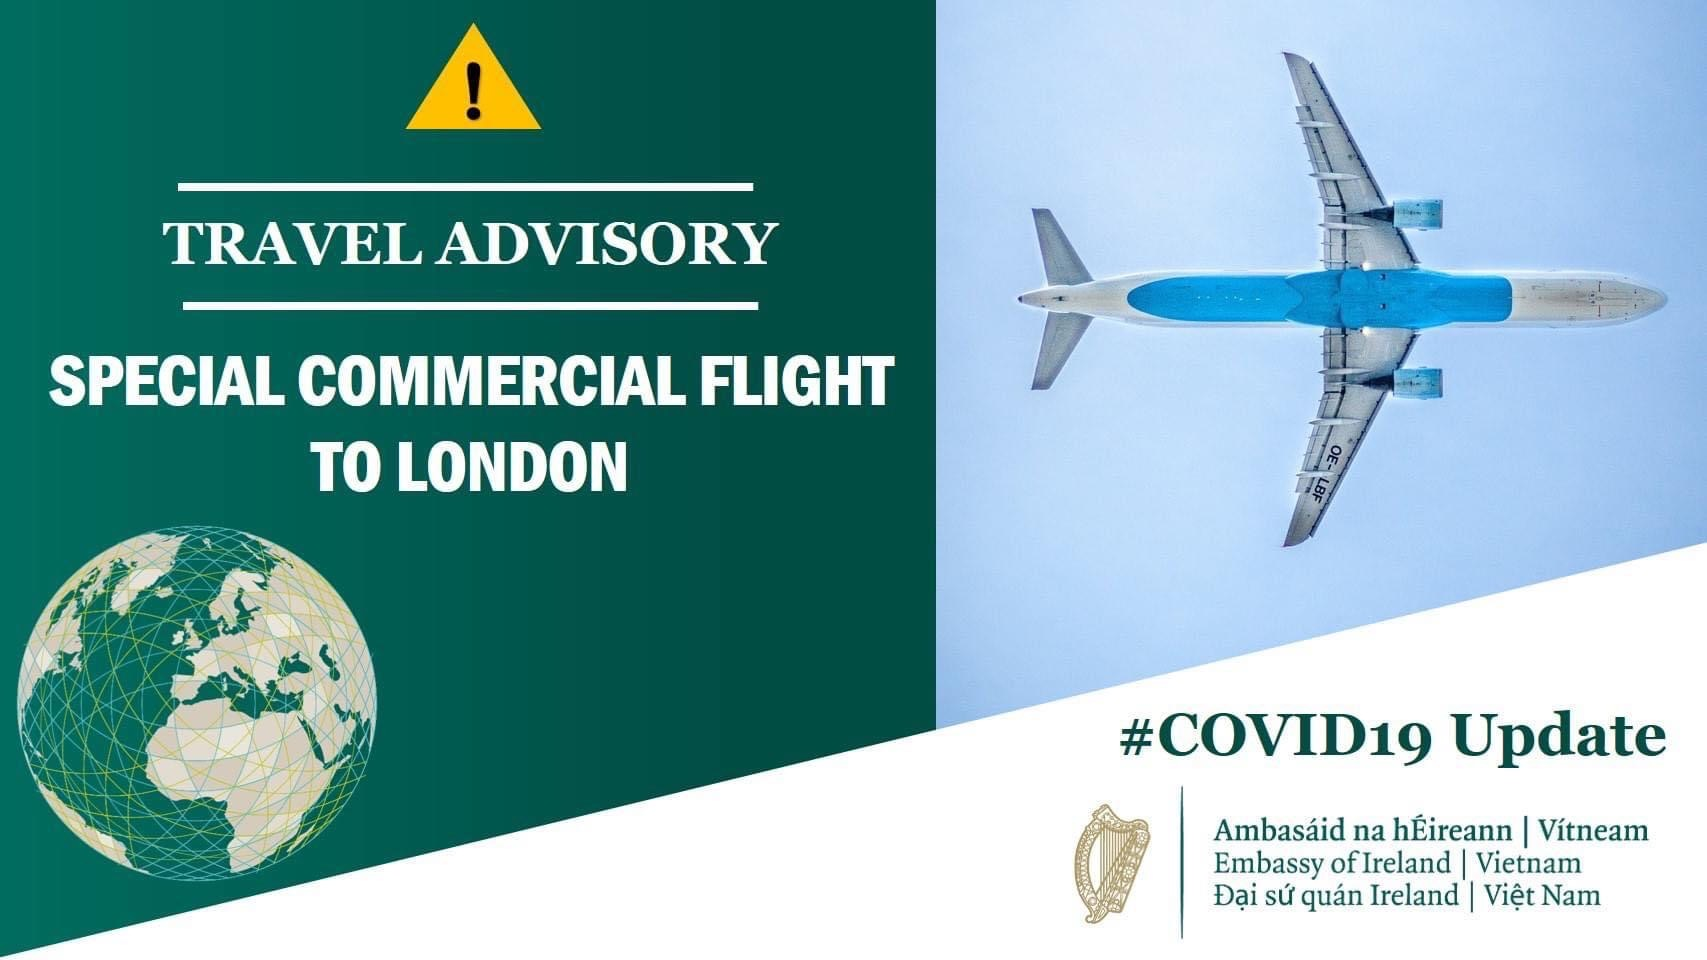 Special Commerical Flight to London